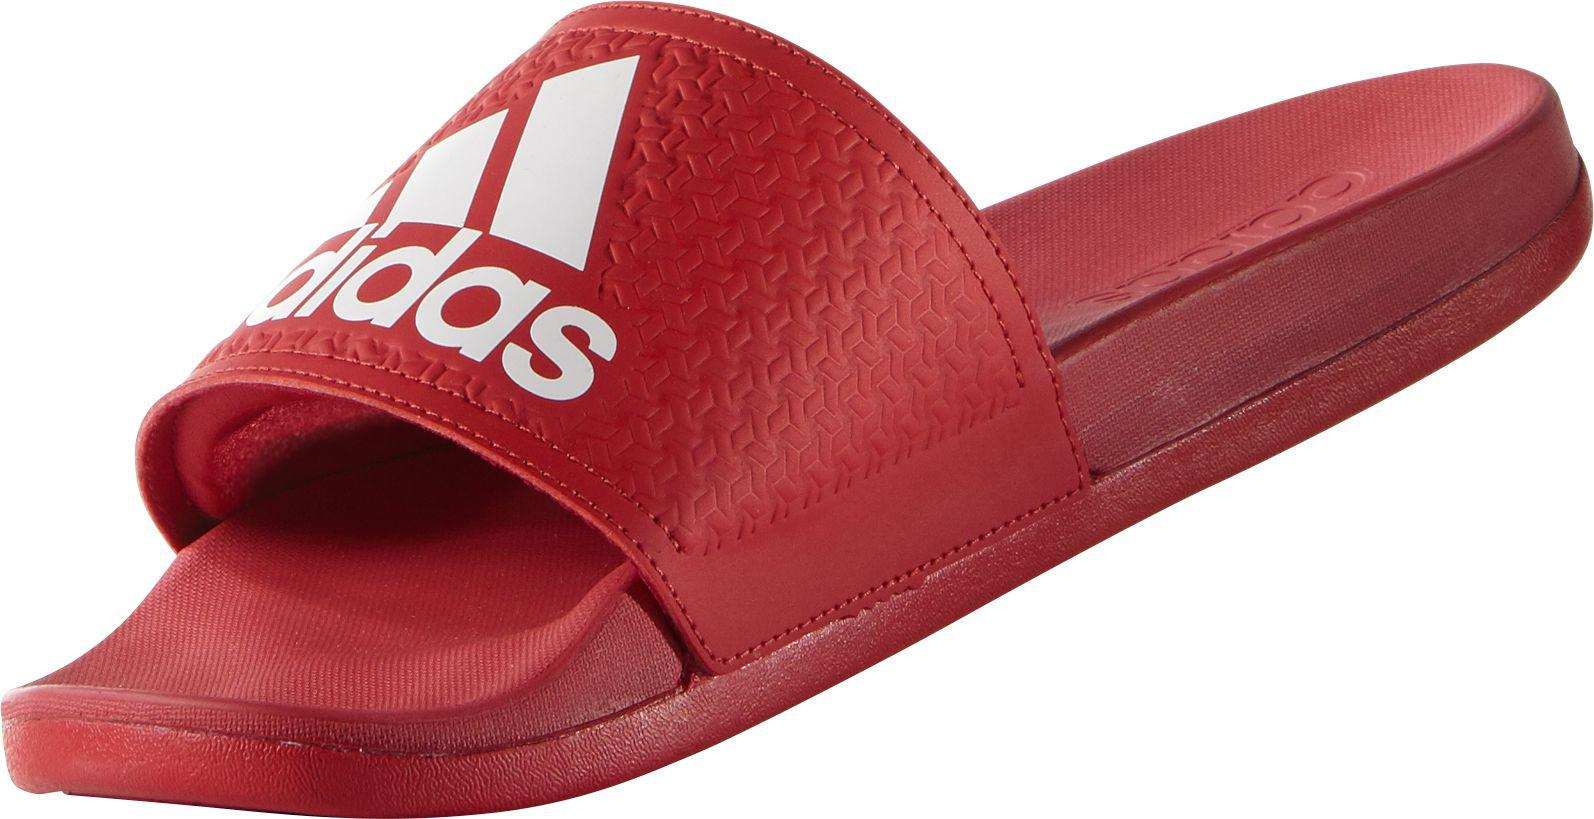 c3b903cfbeba Lyst - adidas Adilette Supercloud Plus Su Slides in Red for Men